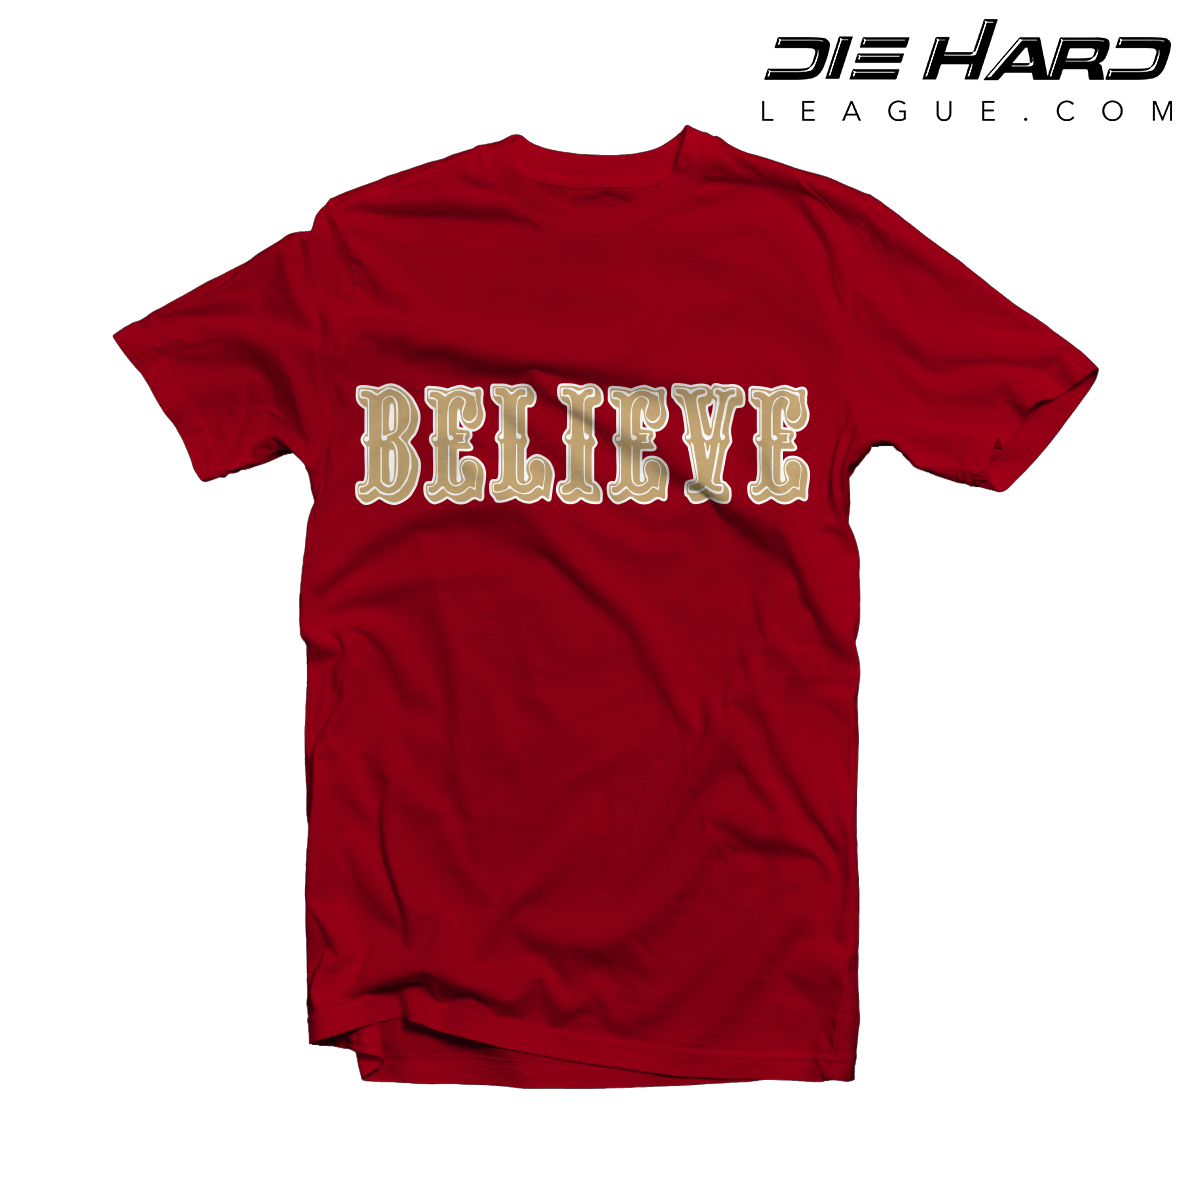 49er Shirts - San Francisco 49ers BELIEVE Red Tee b60b4d01f31f